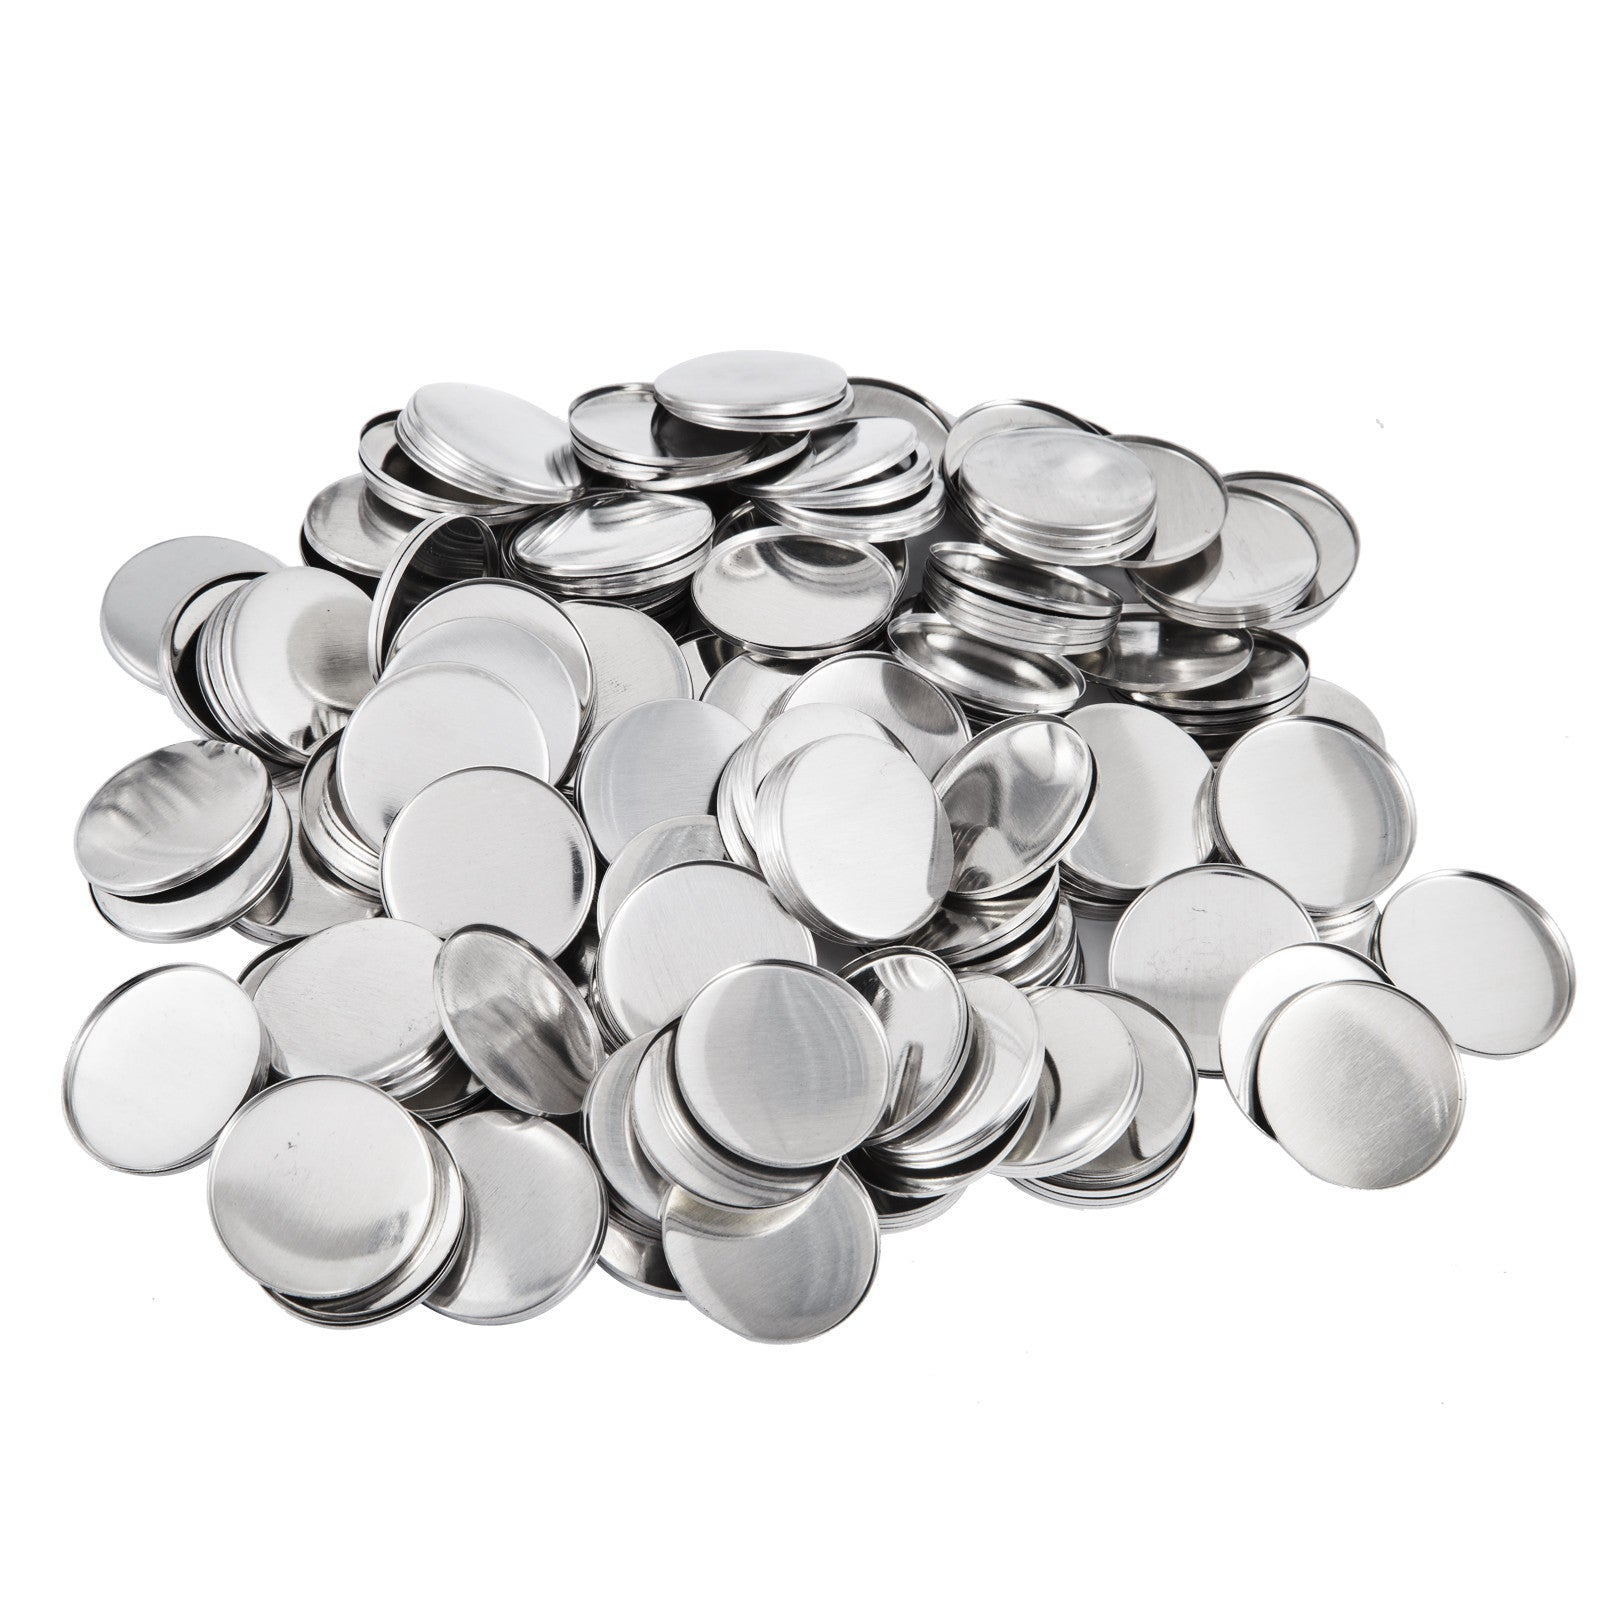 2000pcs Badges Machine à Oeillets Pince Perforeuse Rivet Sac Auvent Bouton Cuir